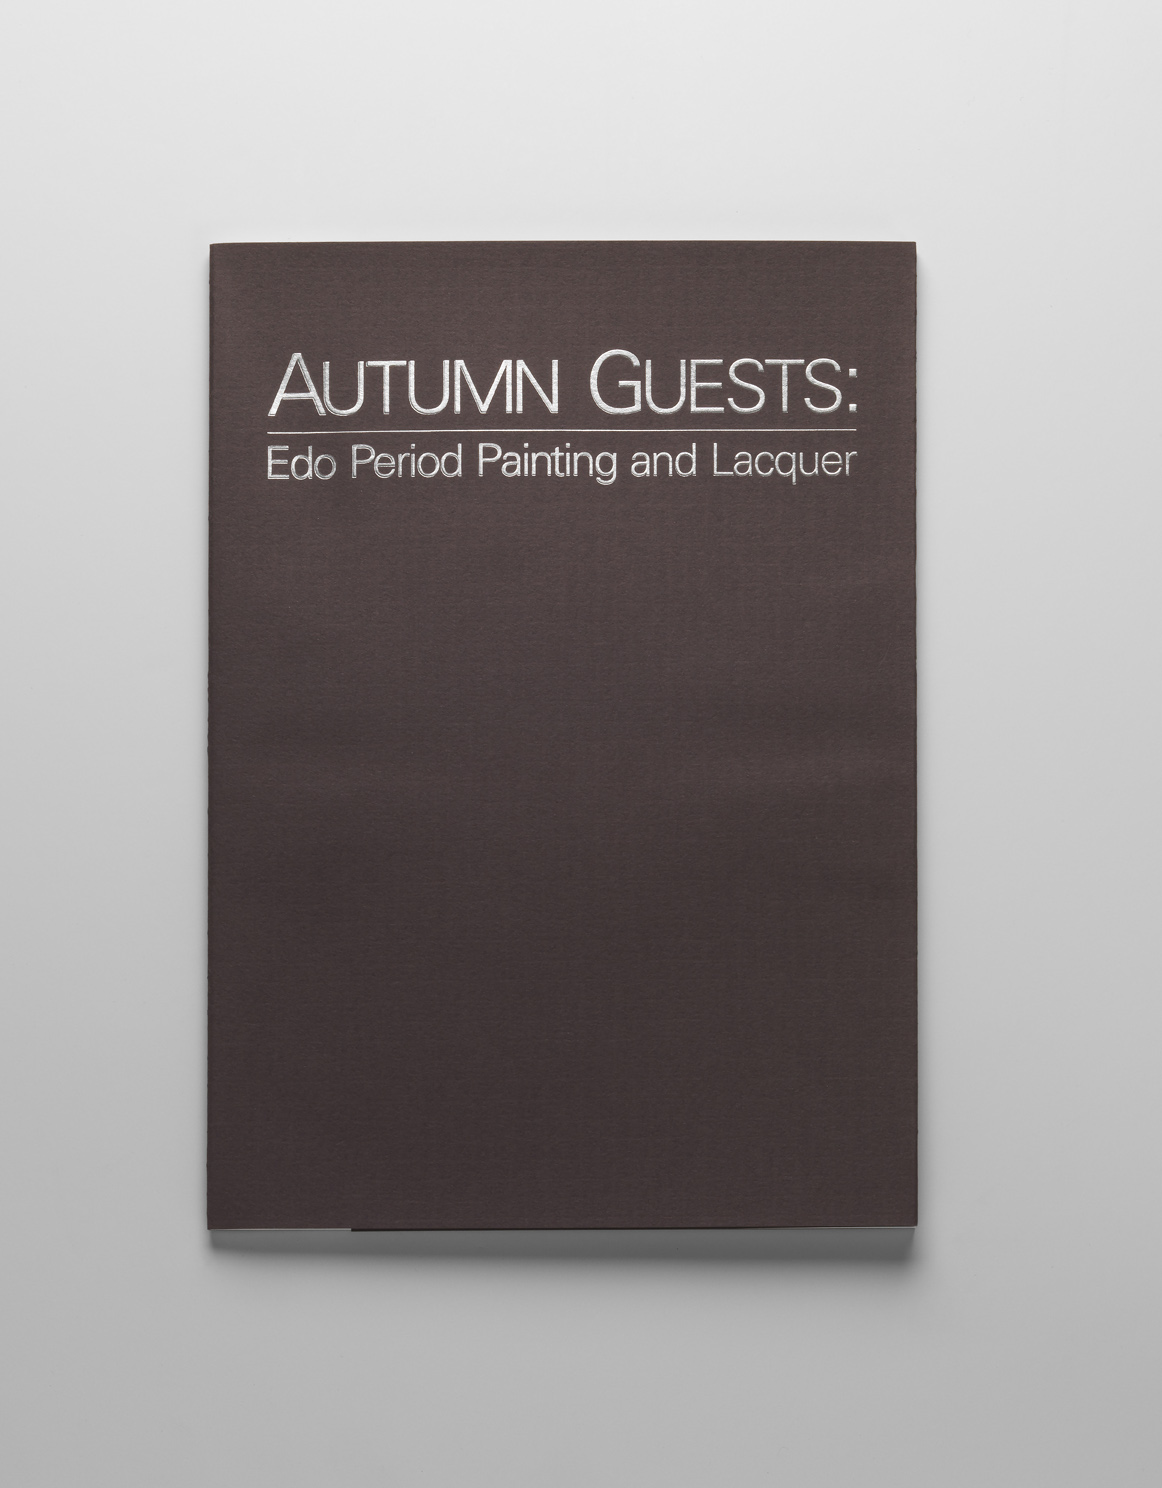 Autumn Guests-1.jpg